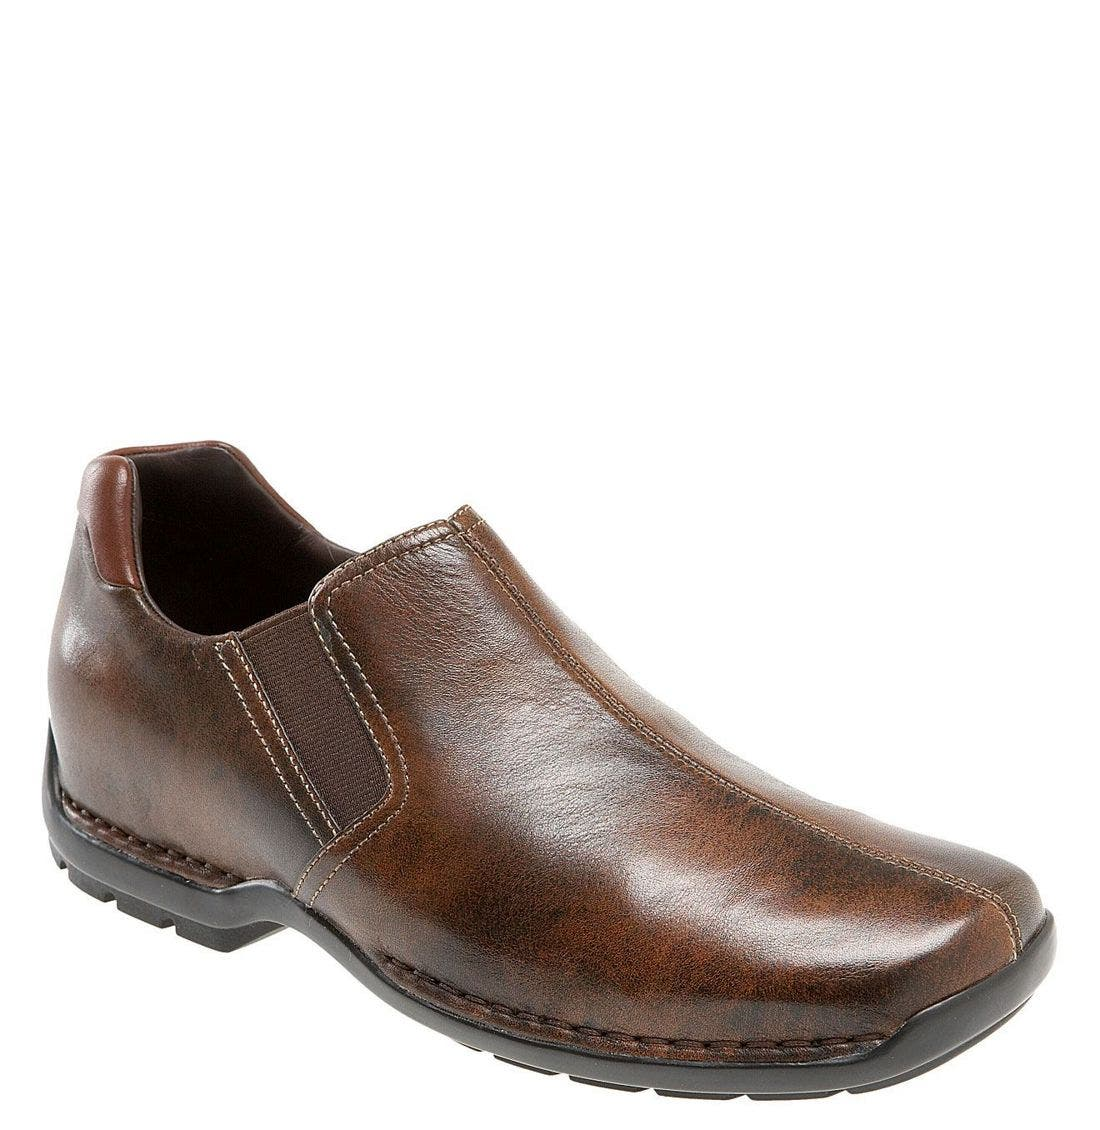 Main Image - Cole Haan 'Zeno' Slip-On